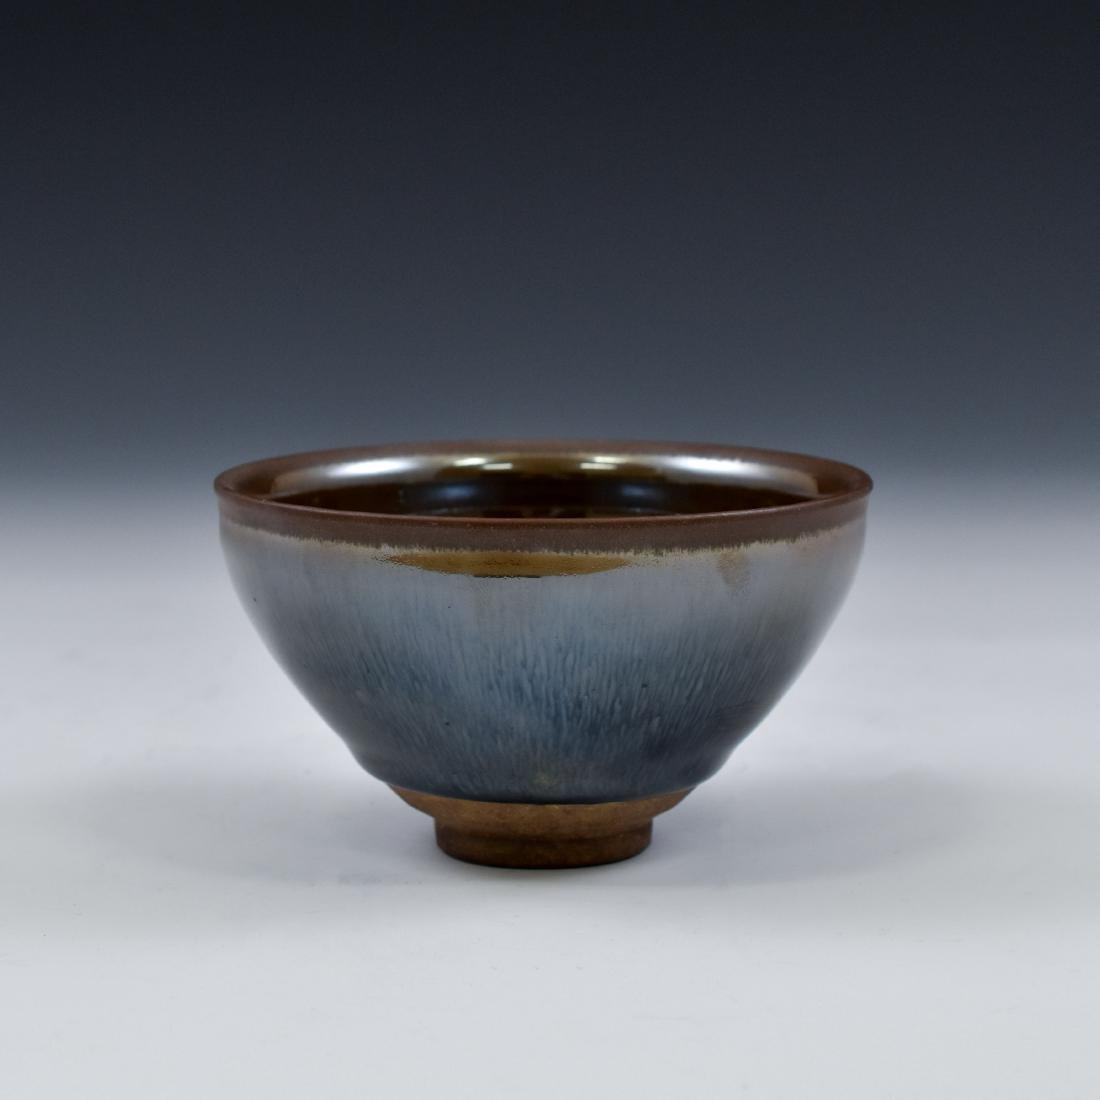 CHINESE JIAN WARE 'HARE FUR' TEA BOWL - 11